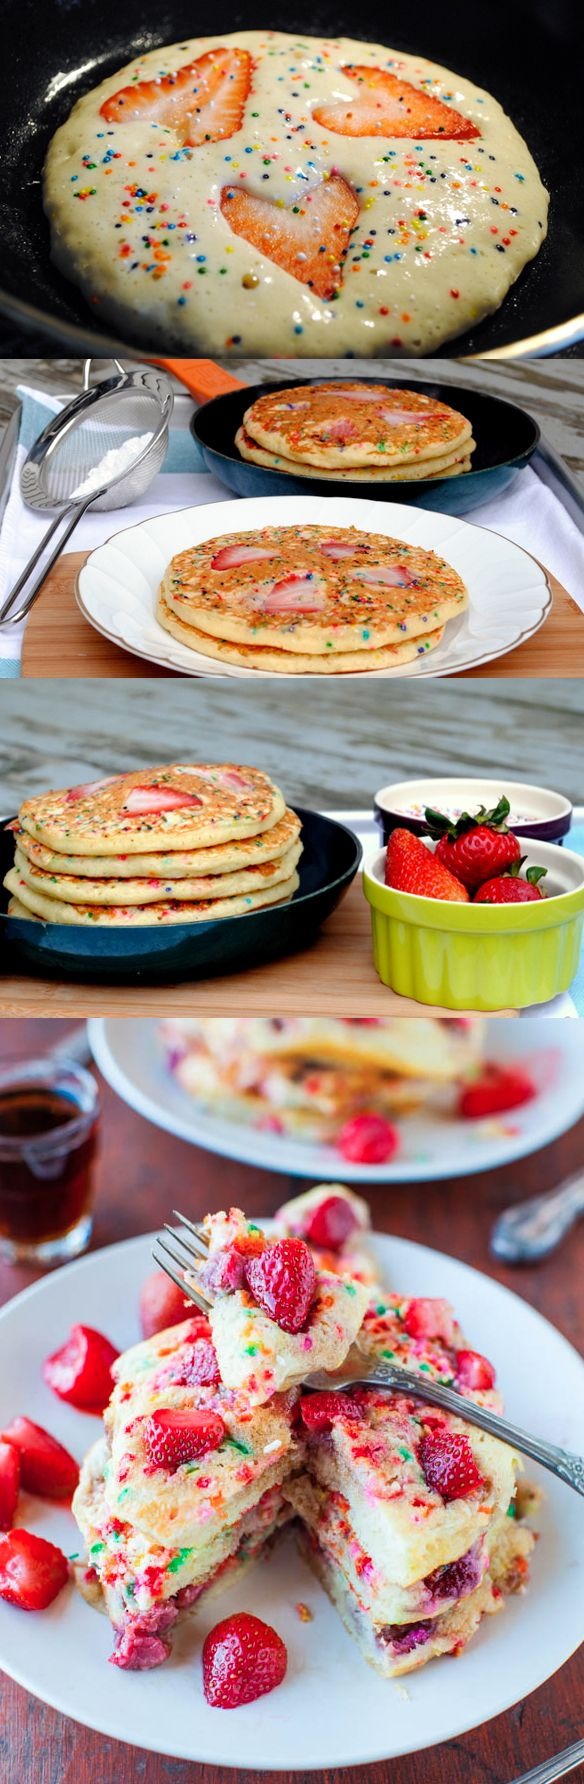 Make these for Breakfast: Strawberry Funfetti Pancakes! Perfect for birthday mornings! #recipe: Birthday Breakfast, Funfetti Pancakes, Breakfast In Bed, Strawberries Pancakes, Valentines Day, Confetti Pancakes, Birthday Pancakes, Birthday Mornings, Strawberries Sprinkles